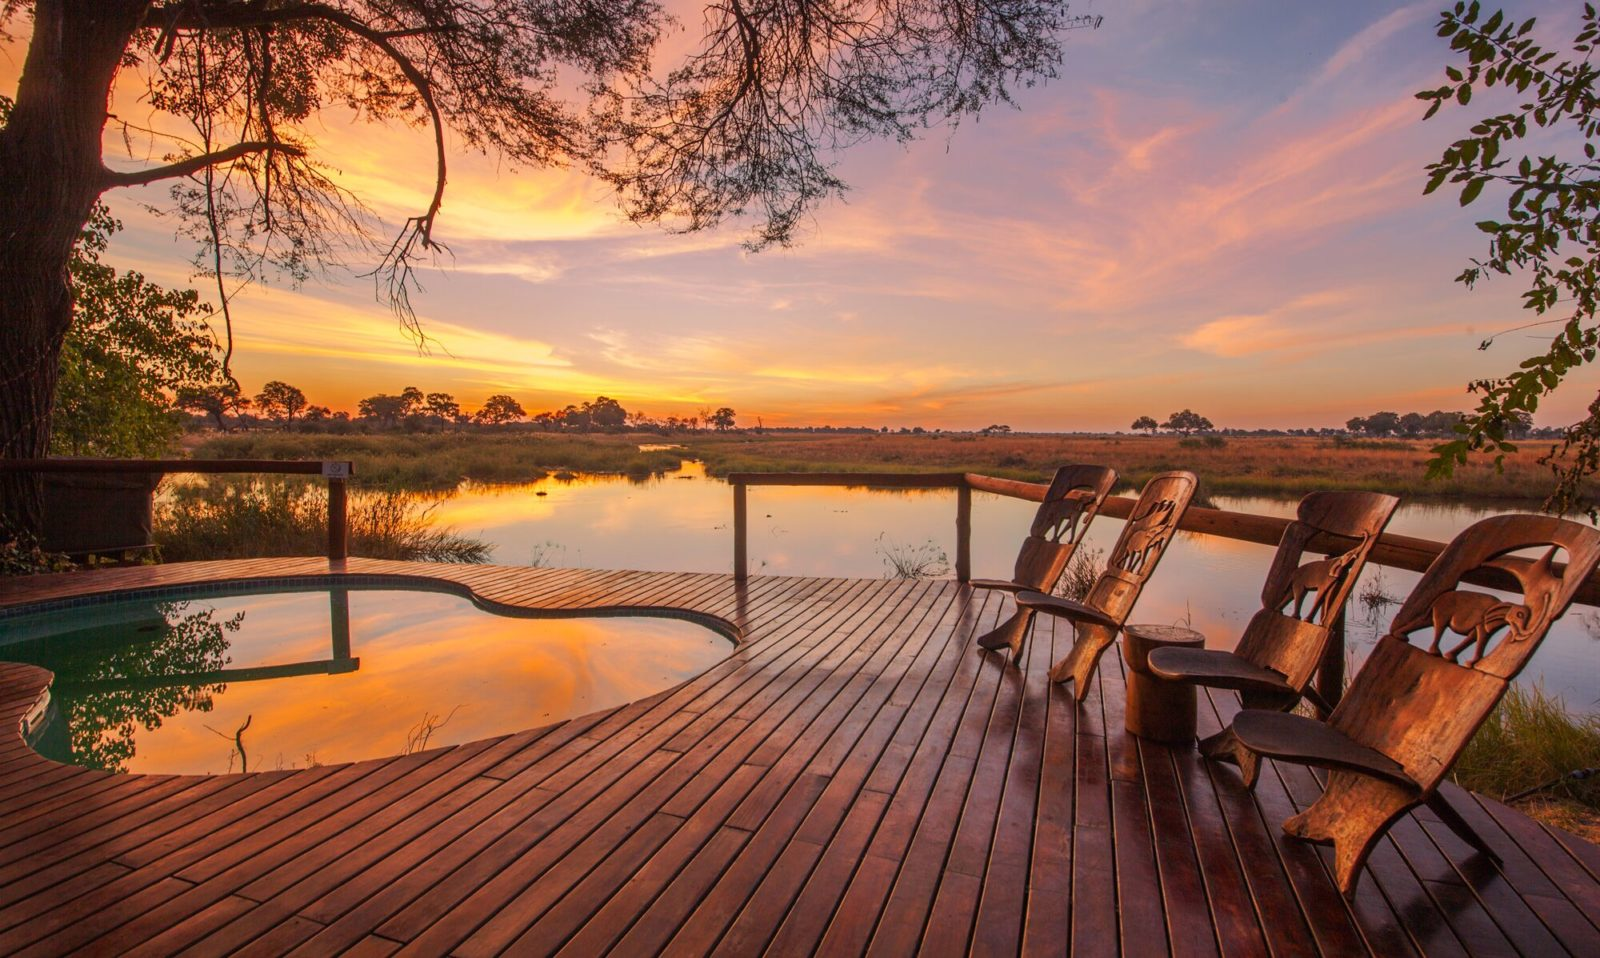 Stunning sunset views from the swimming pool deck at Lagoon Camp